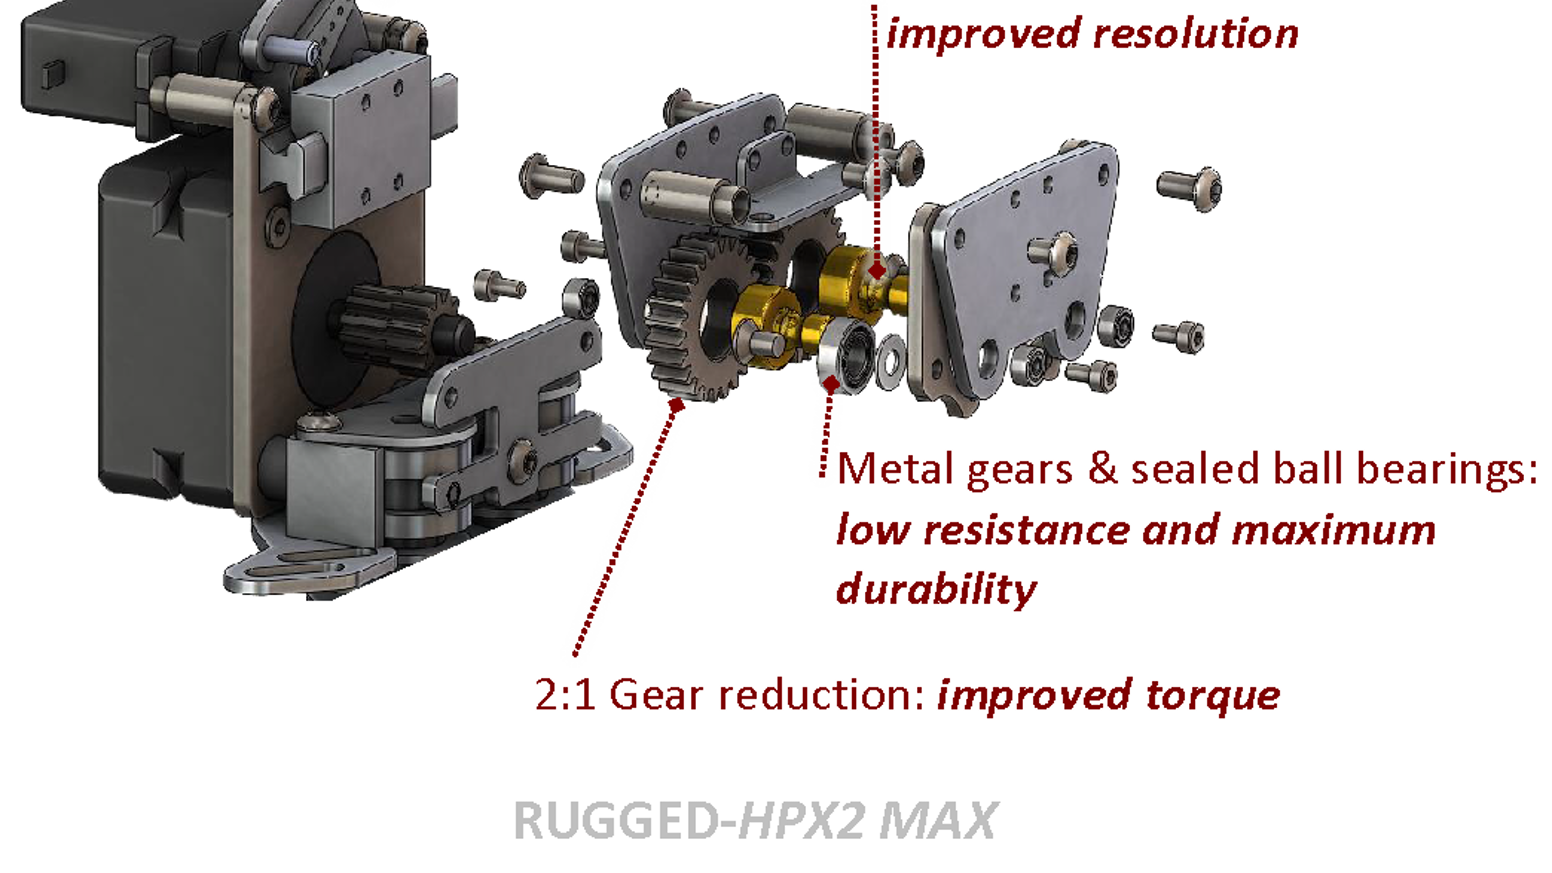 NEXT GENERATION 3D PRINTER EXTRUDERS: THE RUGGED-HPX LINE by Dglass